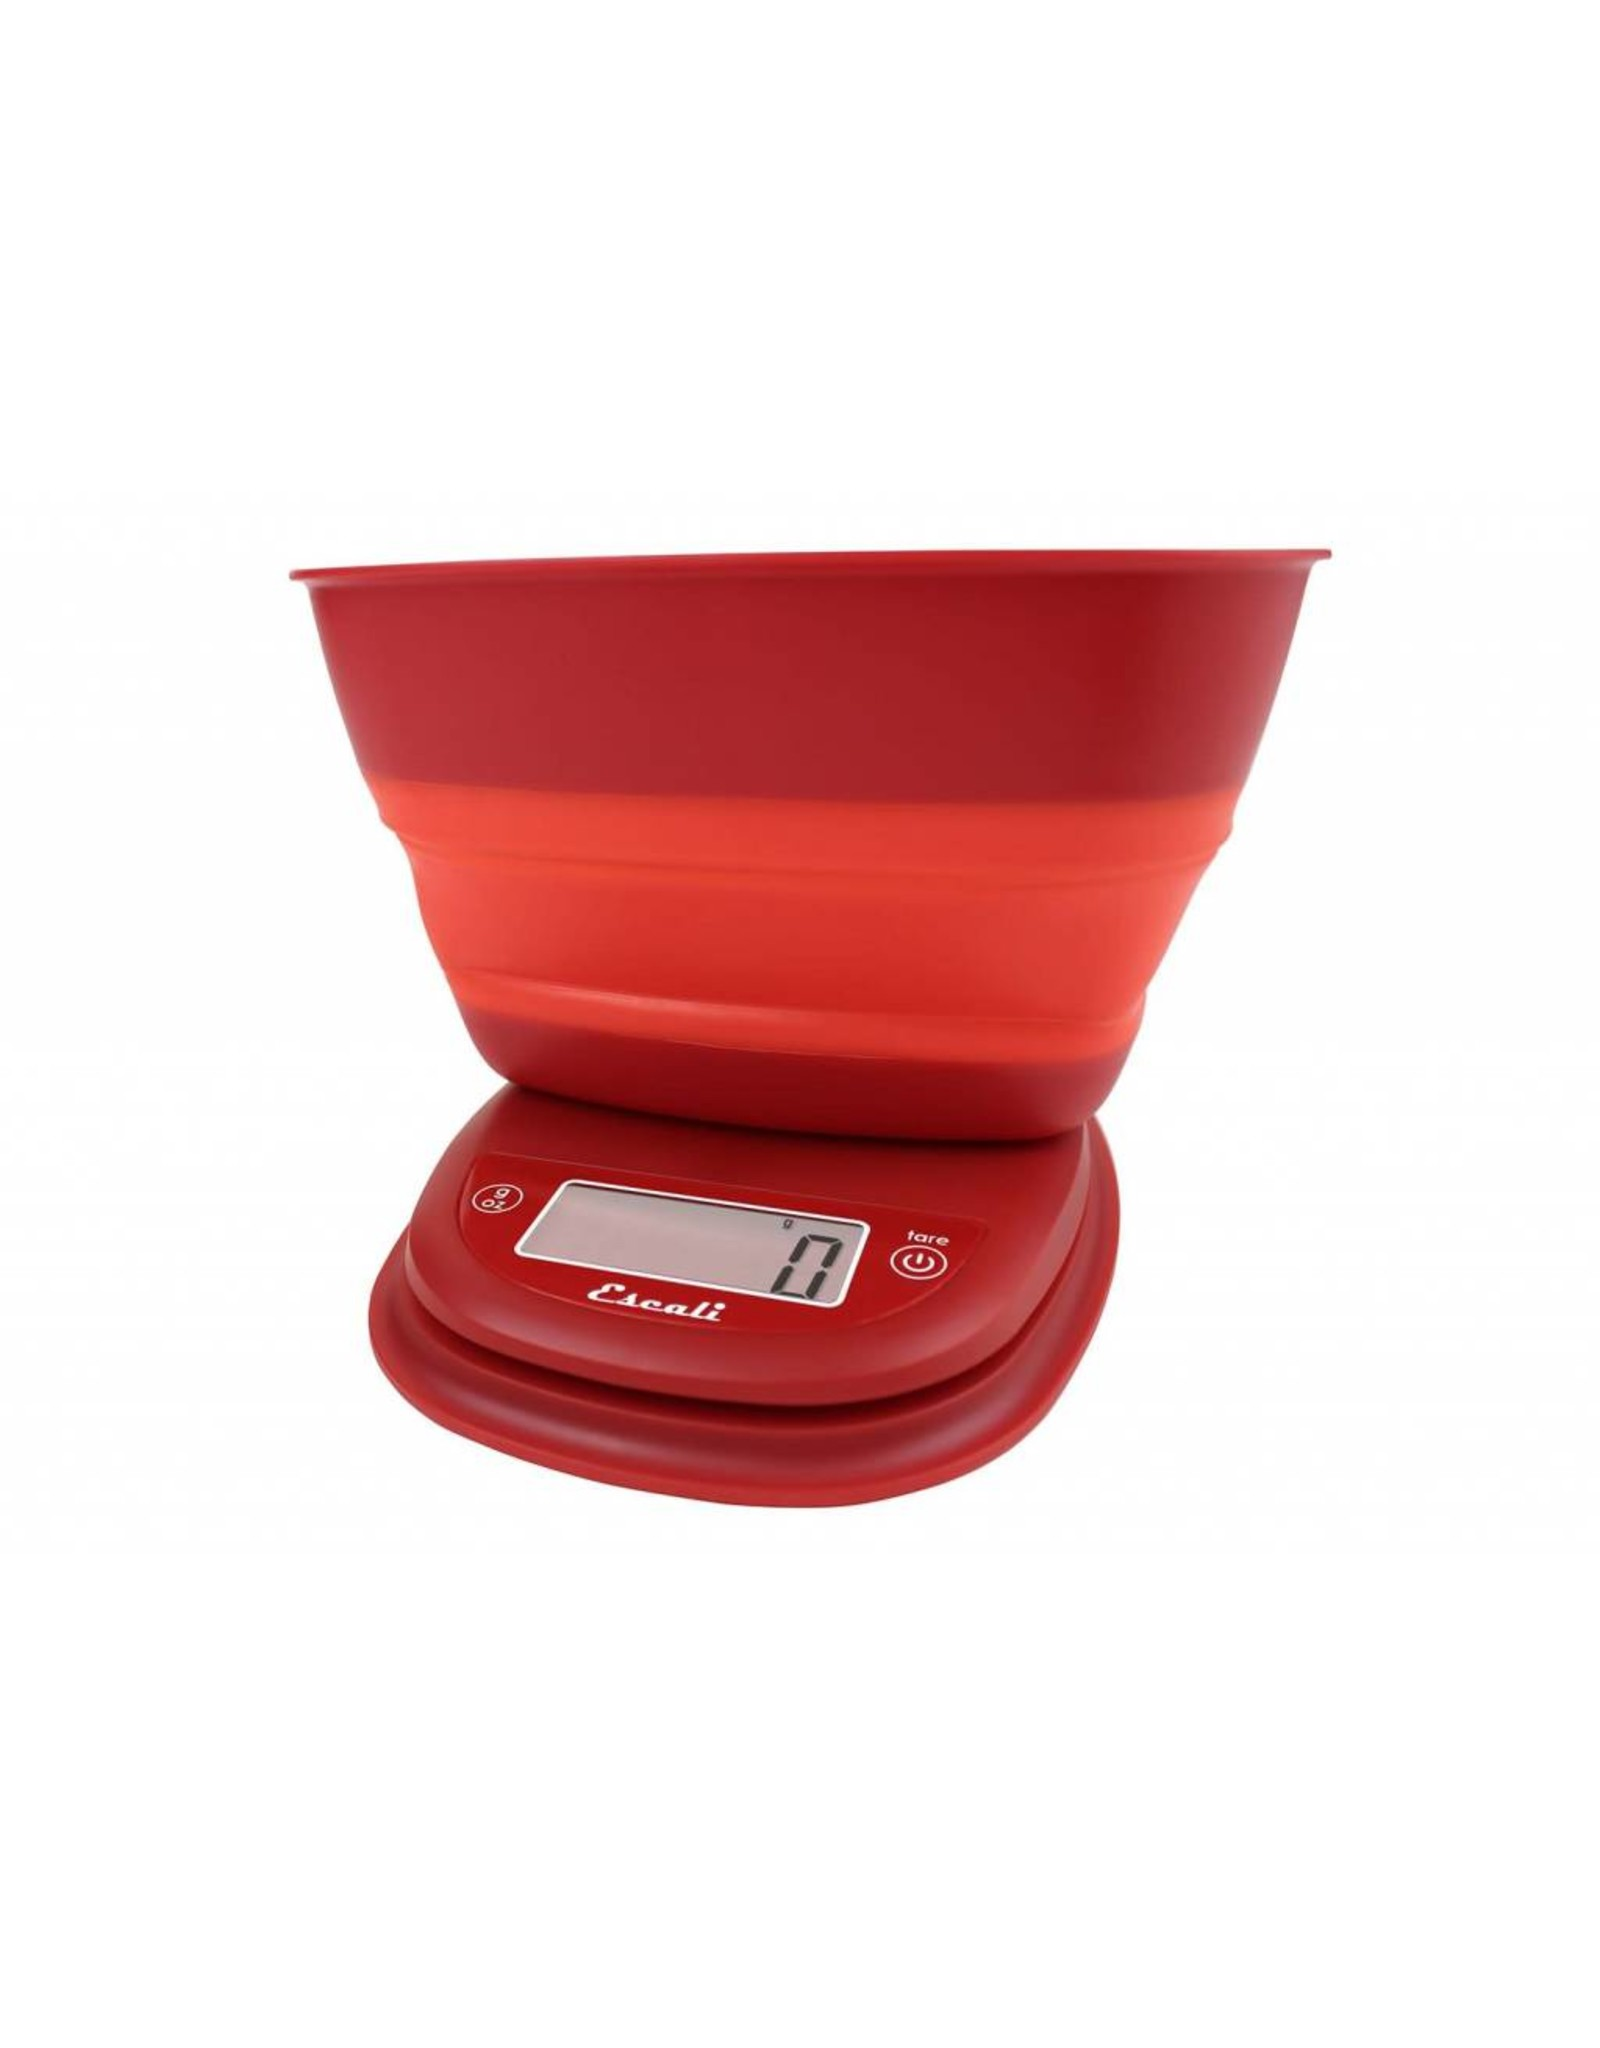 Pop Collapsible Bowl Digital Scale - Poppy Red